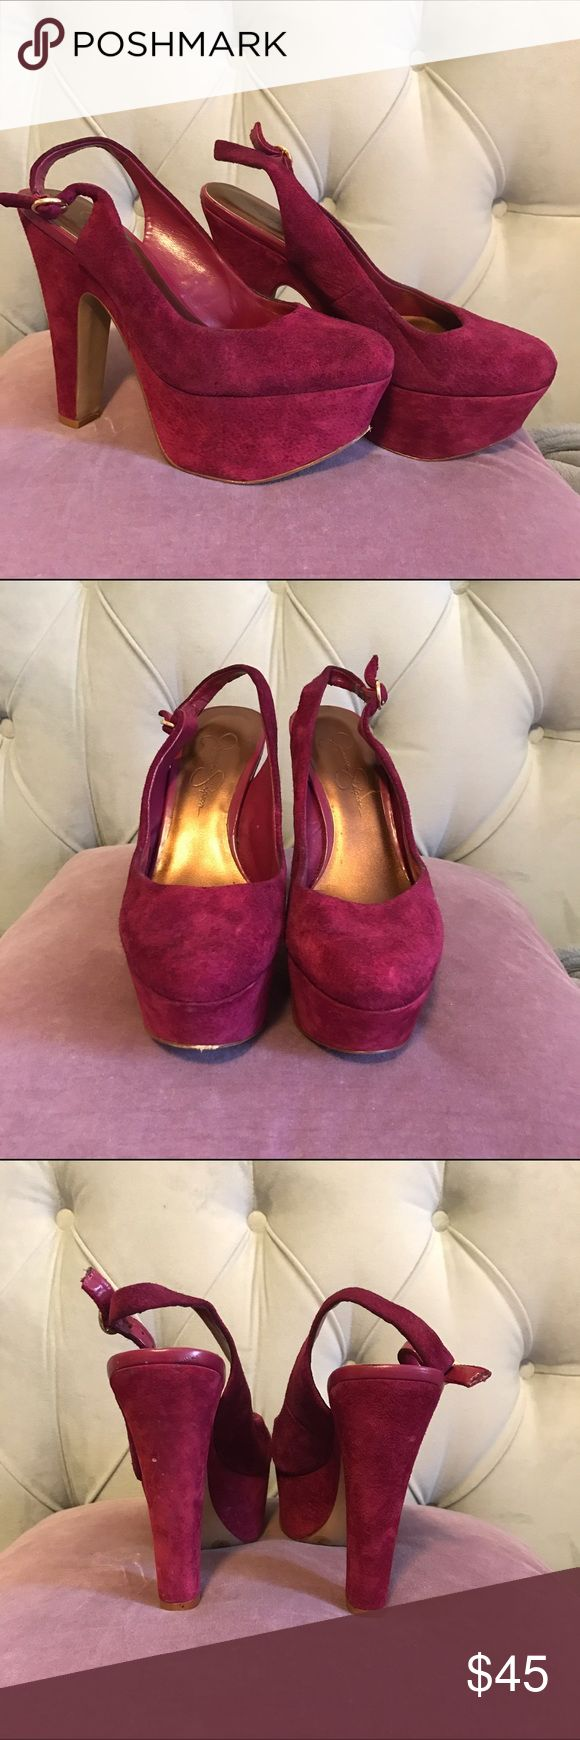 Jessica Simpson Platform Slingbacks Rich purple suede. Very comfortable. Will fit larger size feet - I'm 8.5 and was able to wear these comfortably. Jessica Simpson Shoes Platforms